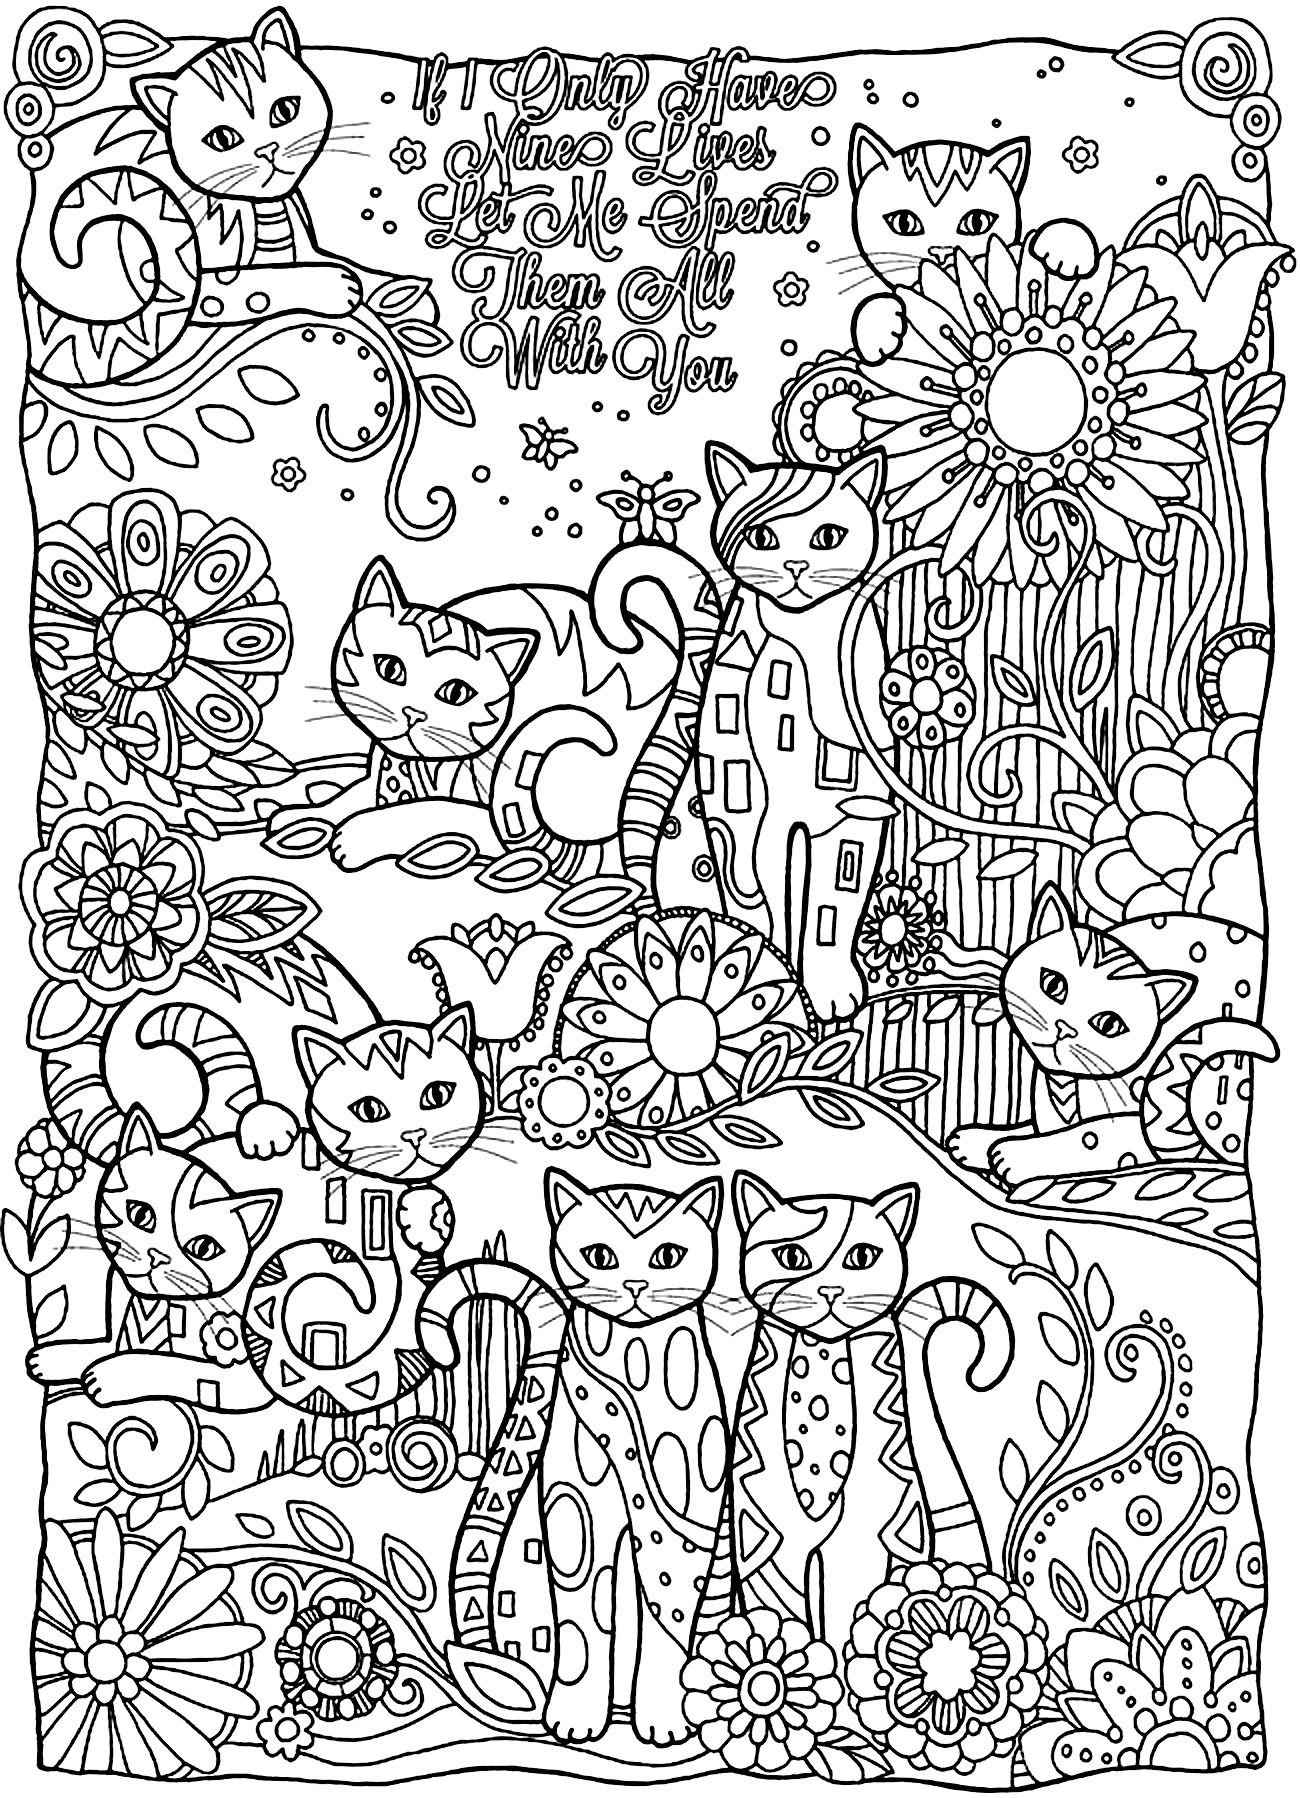 cute cats just missing for colors